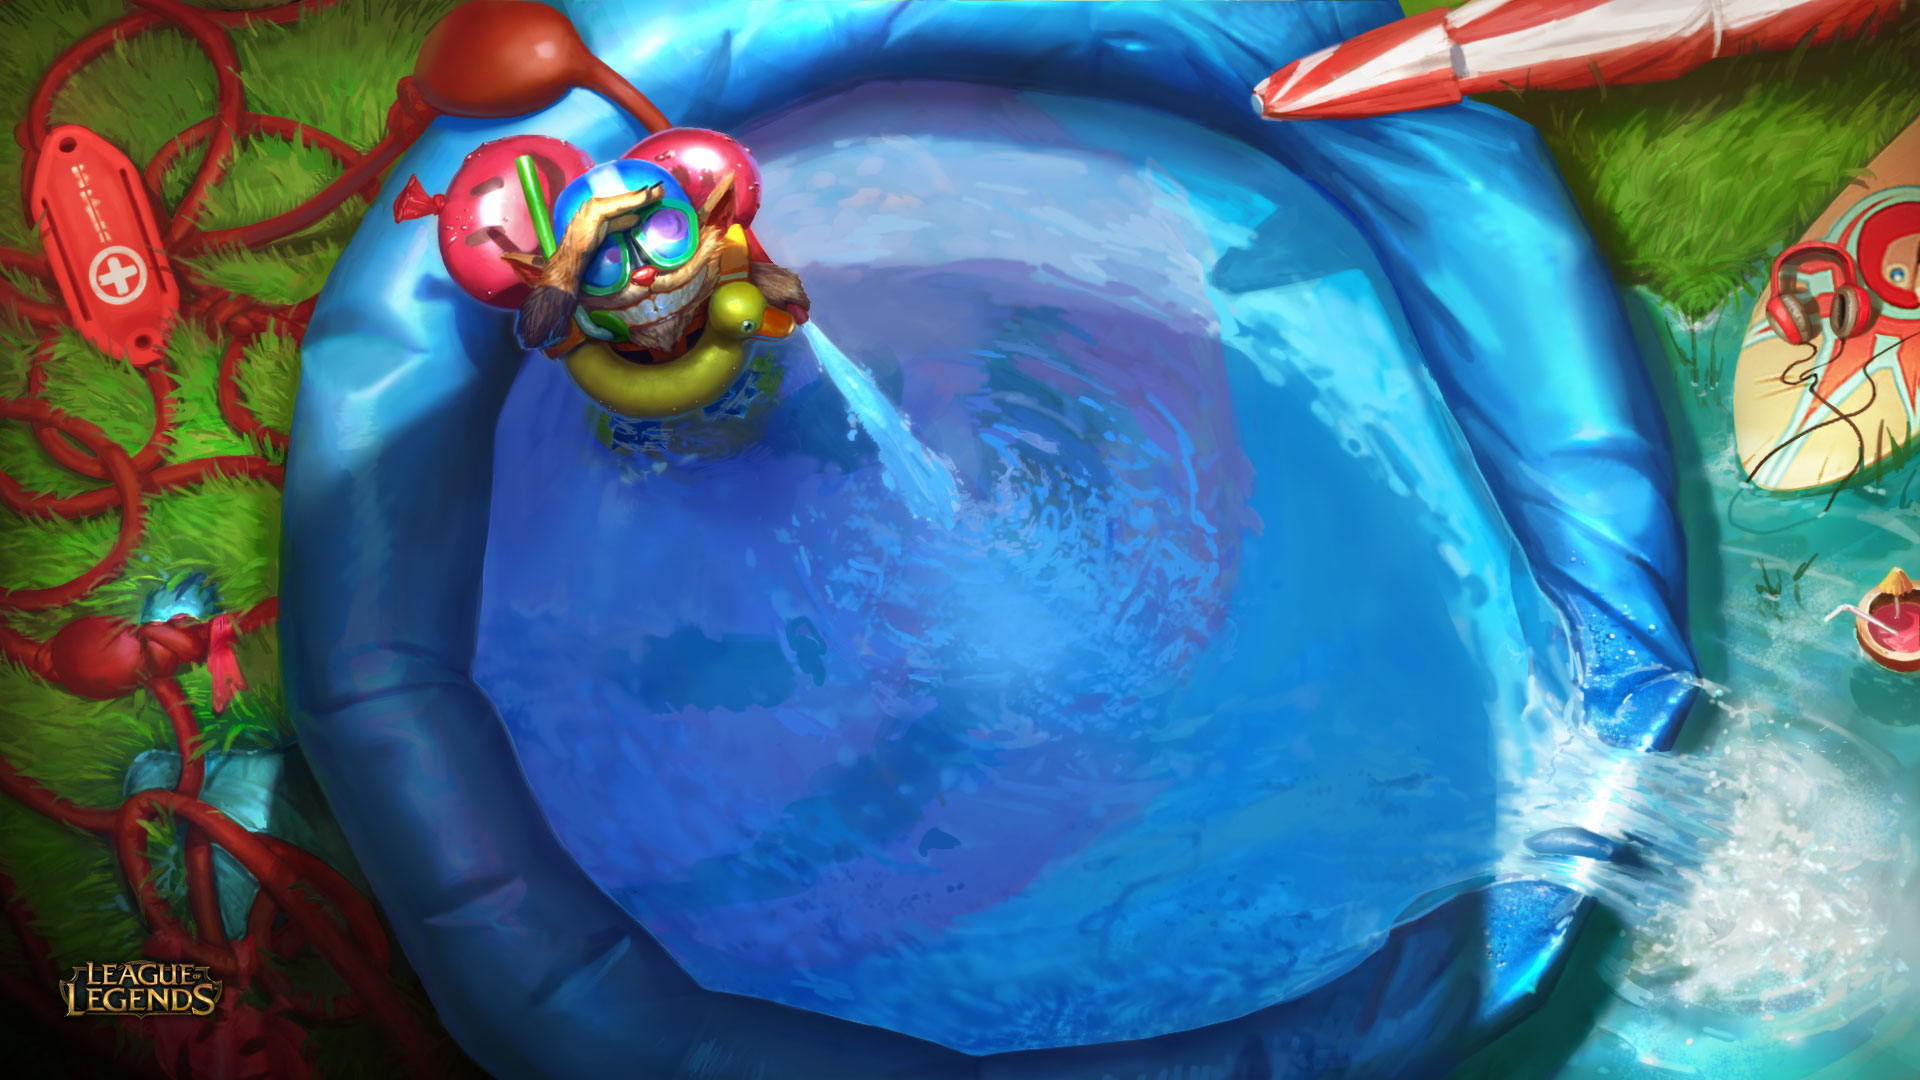 Pool Party Invitation League Of Legends